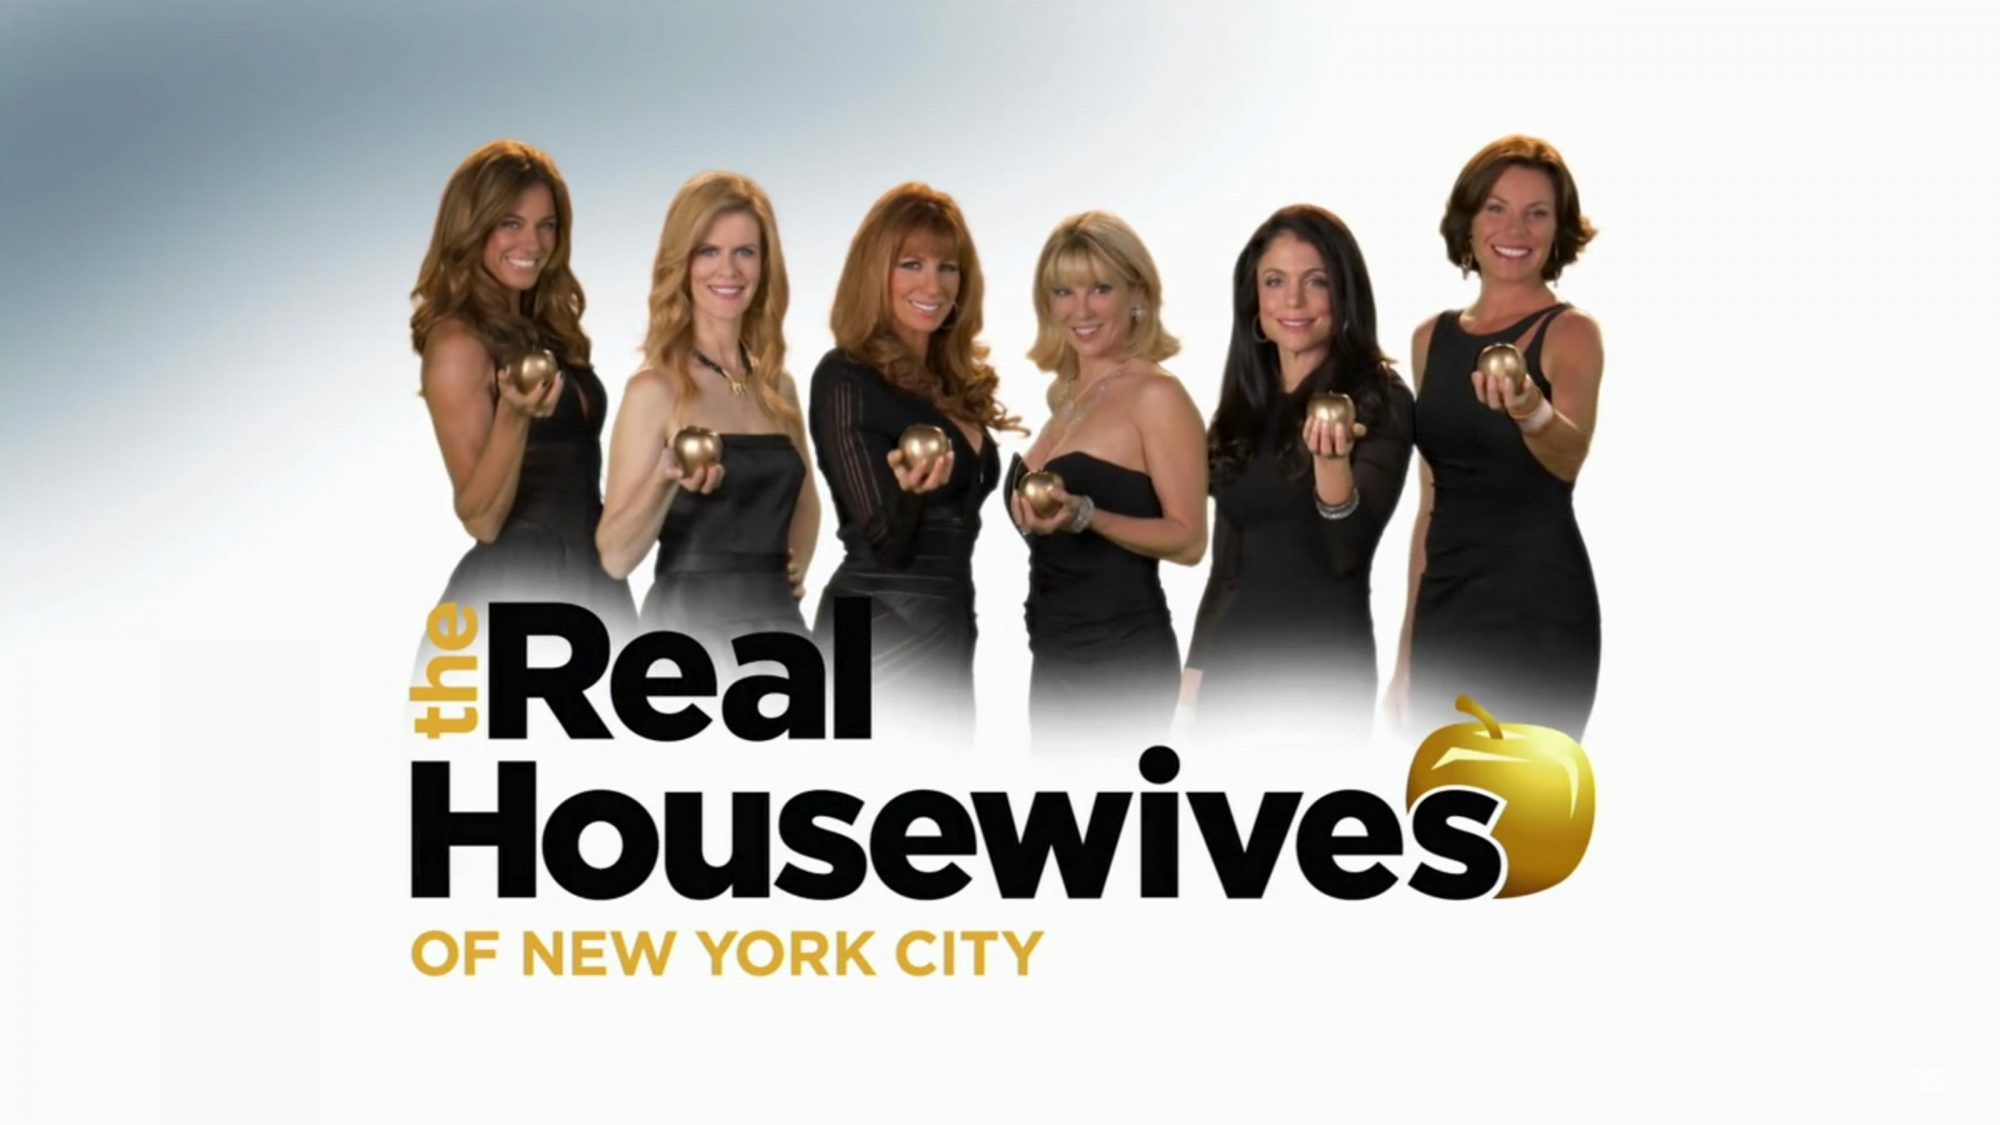 The Real Housewives franchise (2006-present)